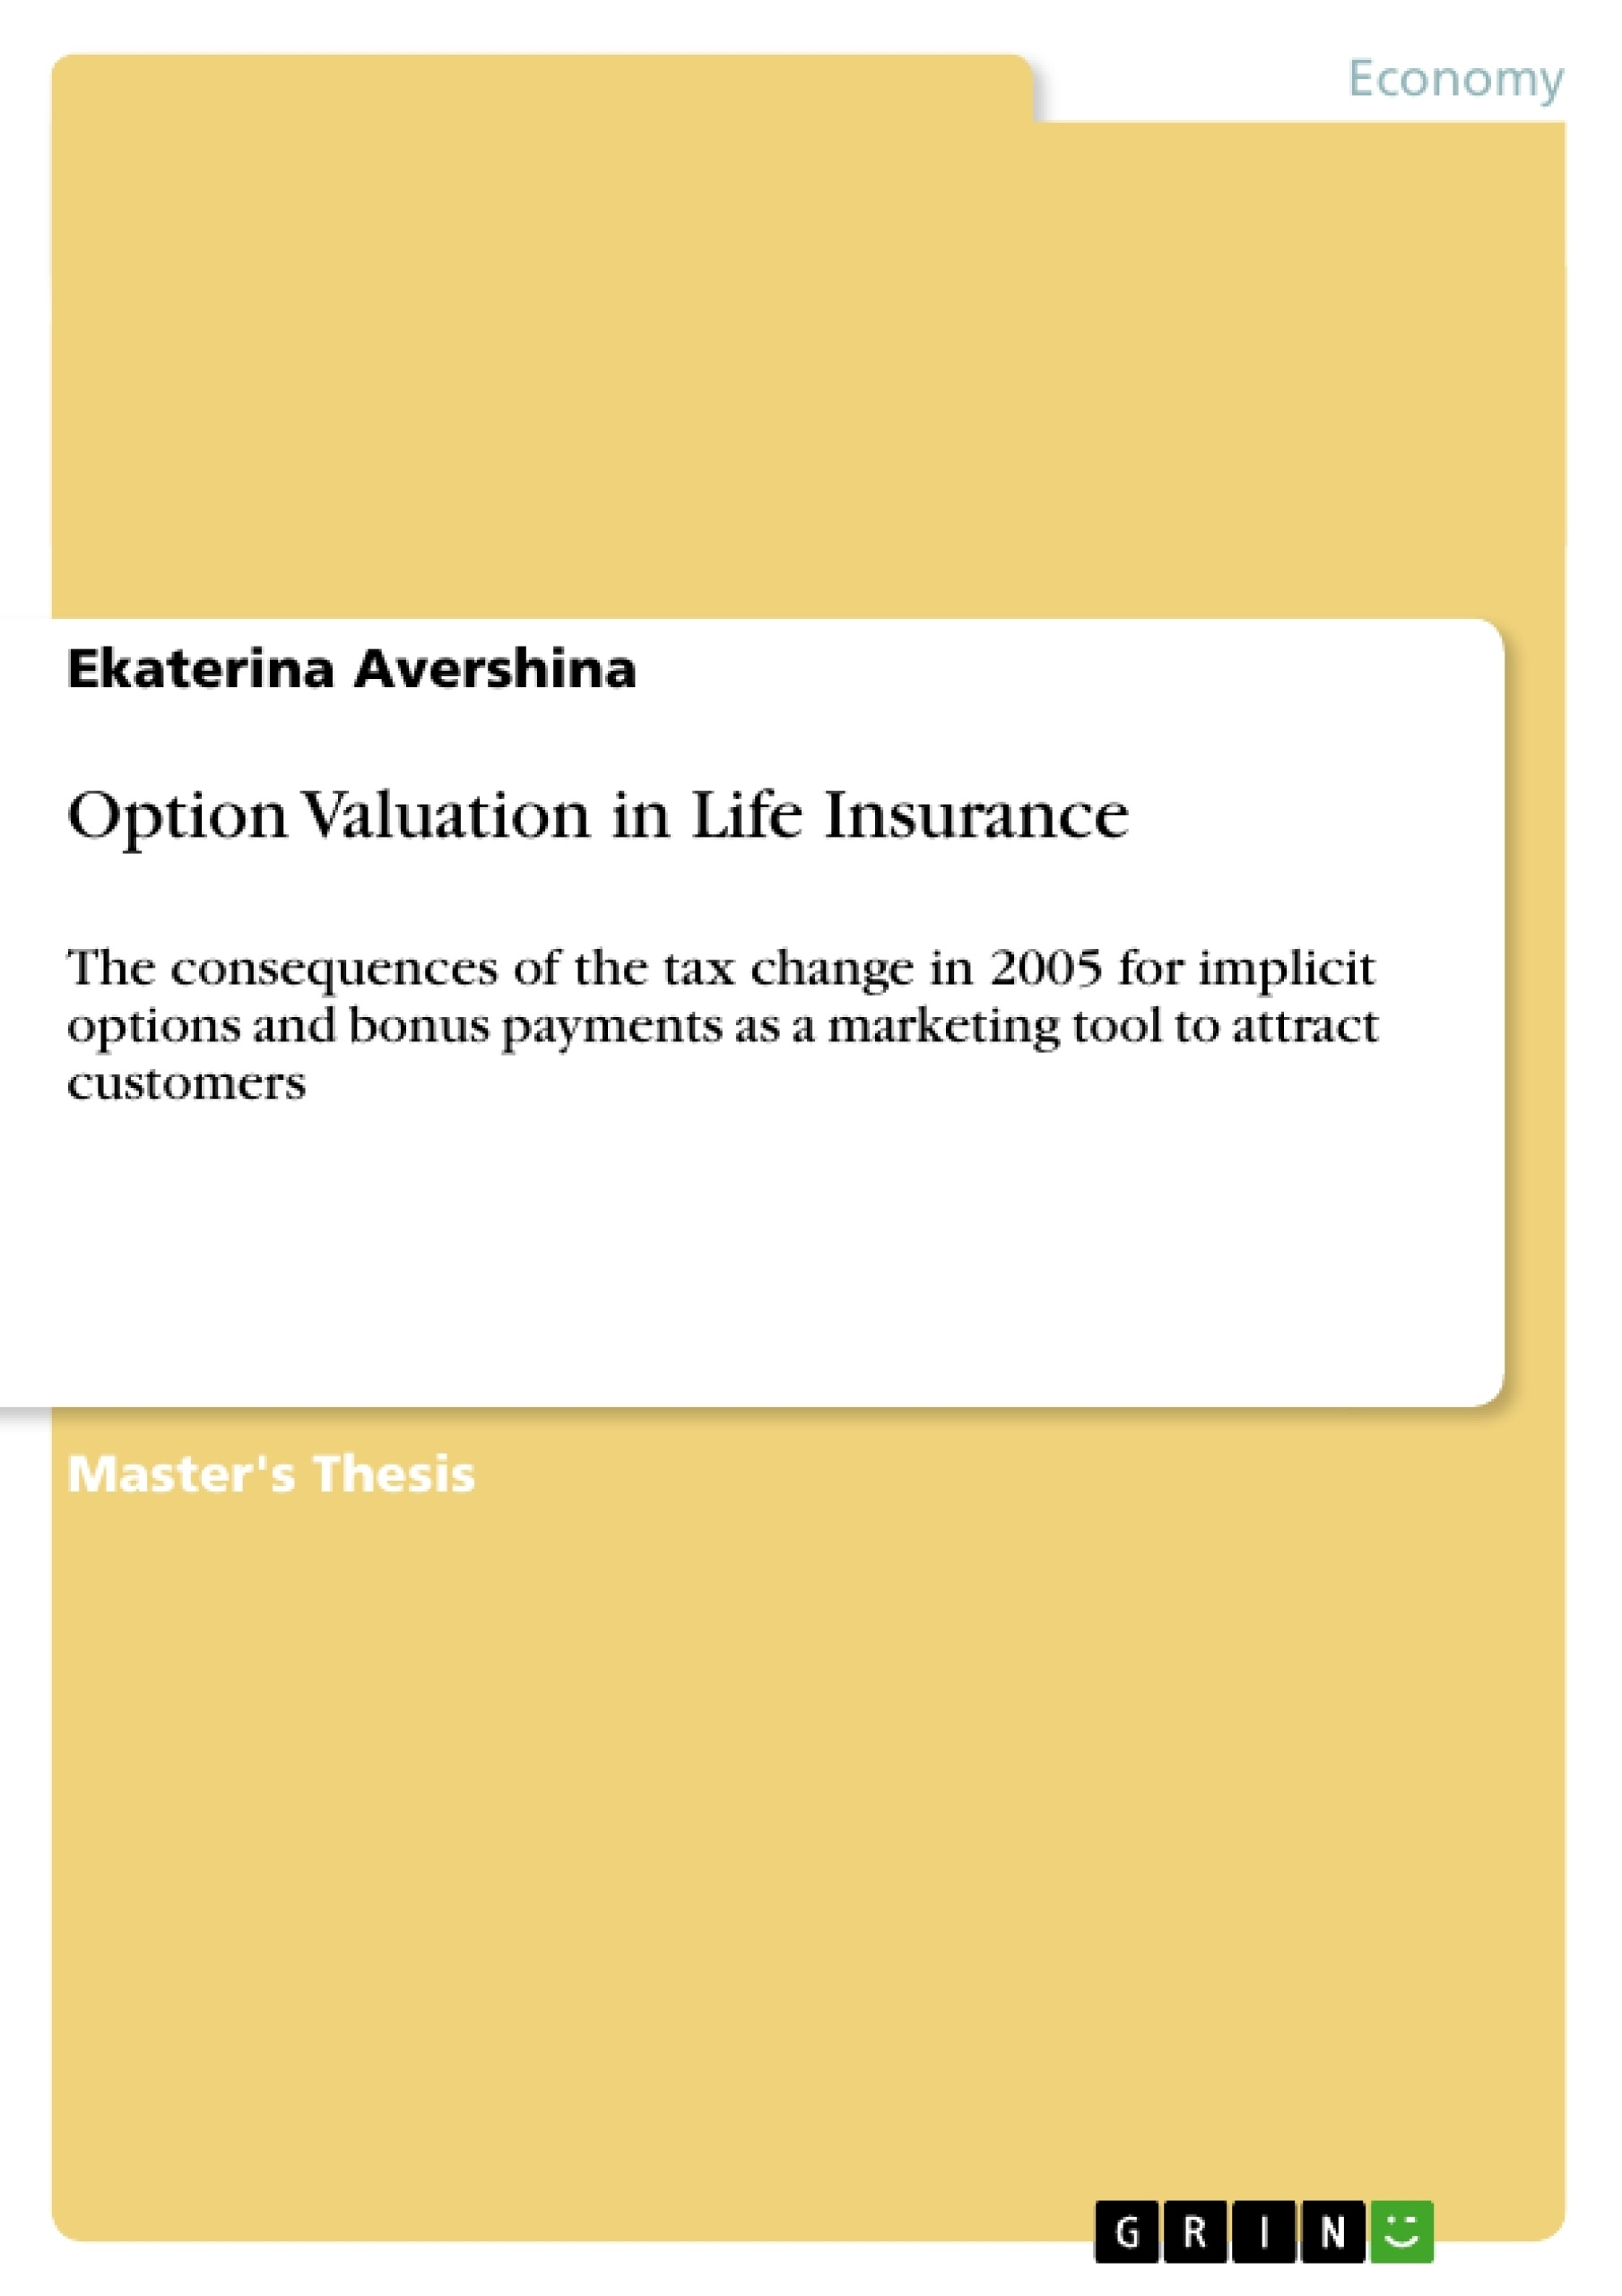 Title: Option Valuation in Life Insurance